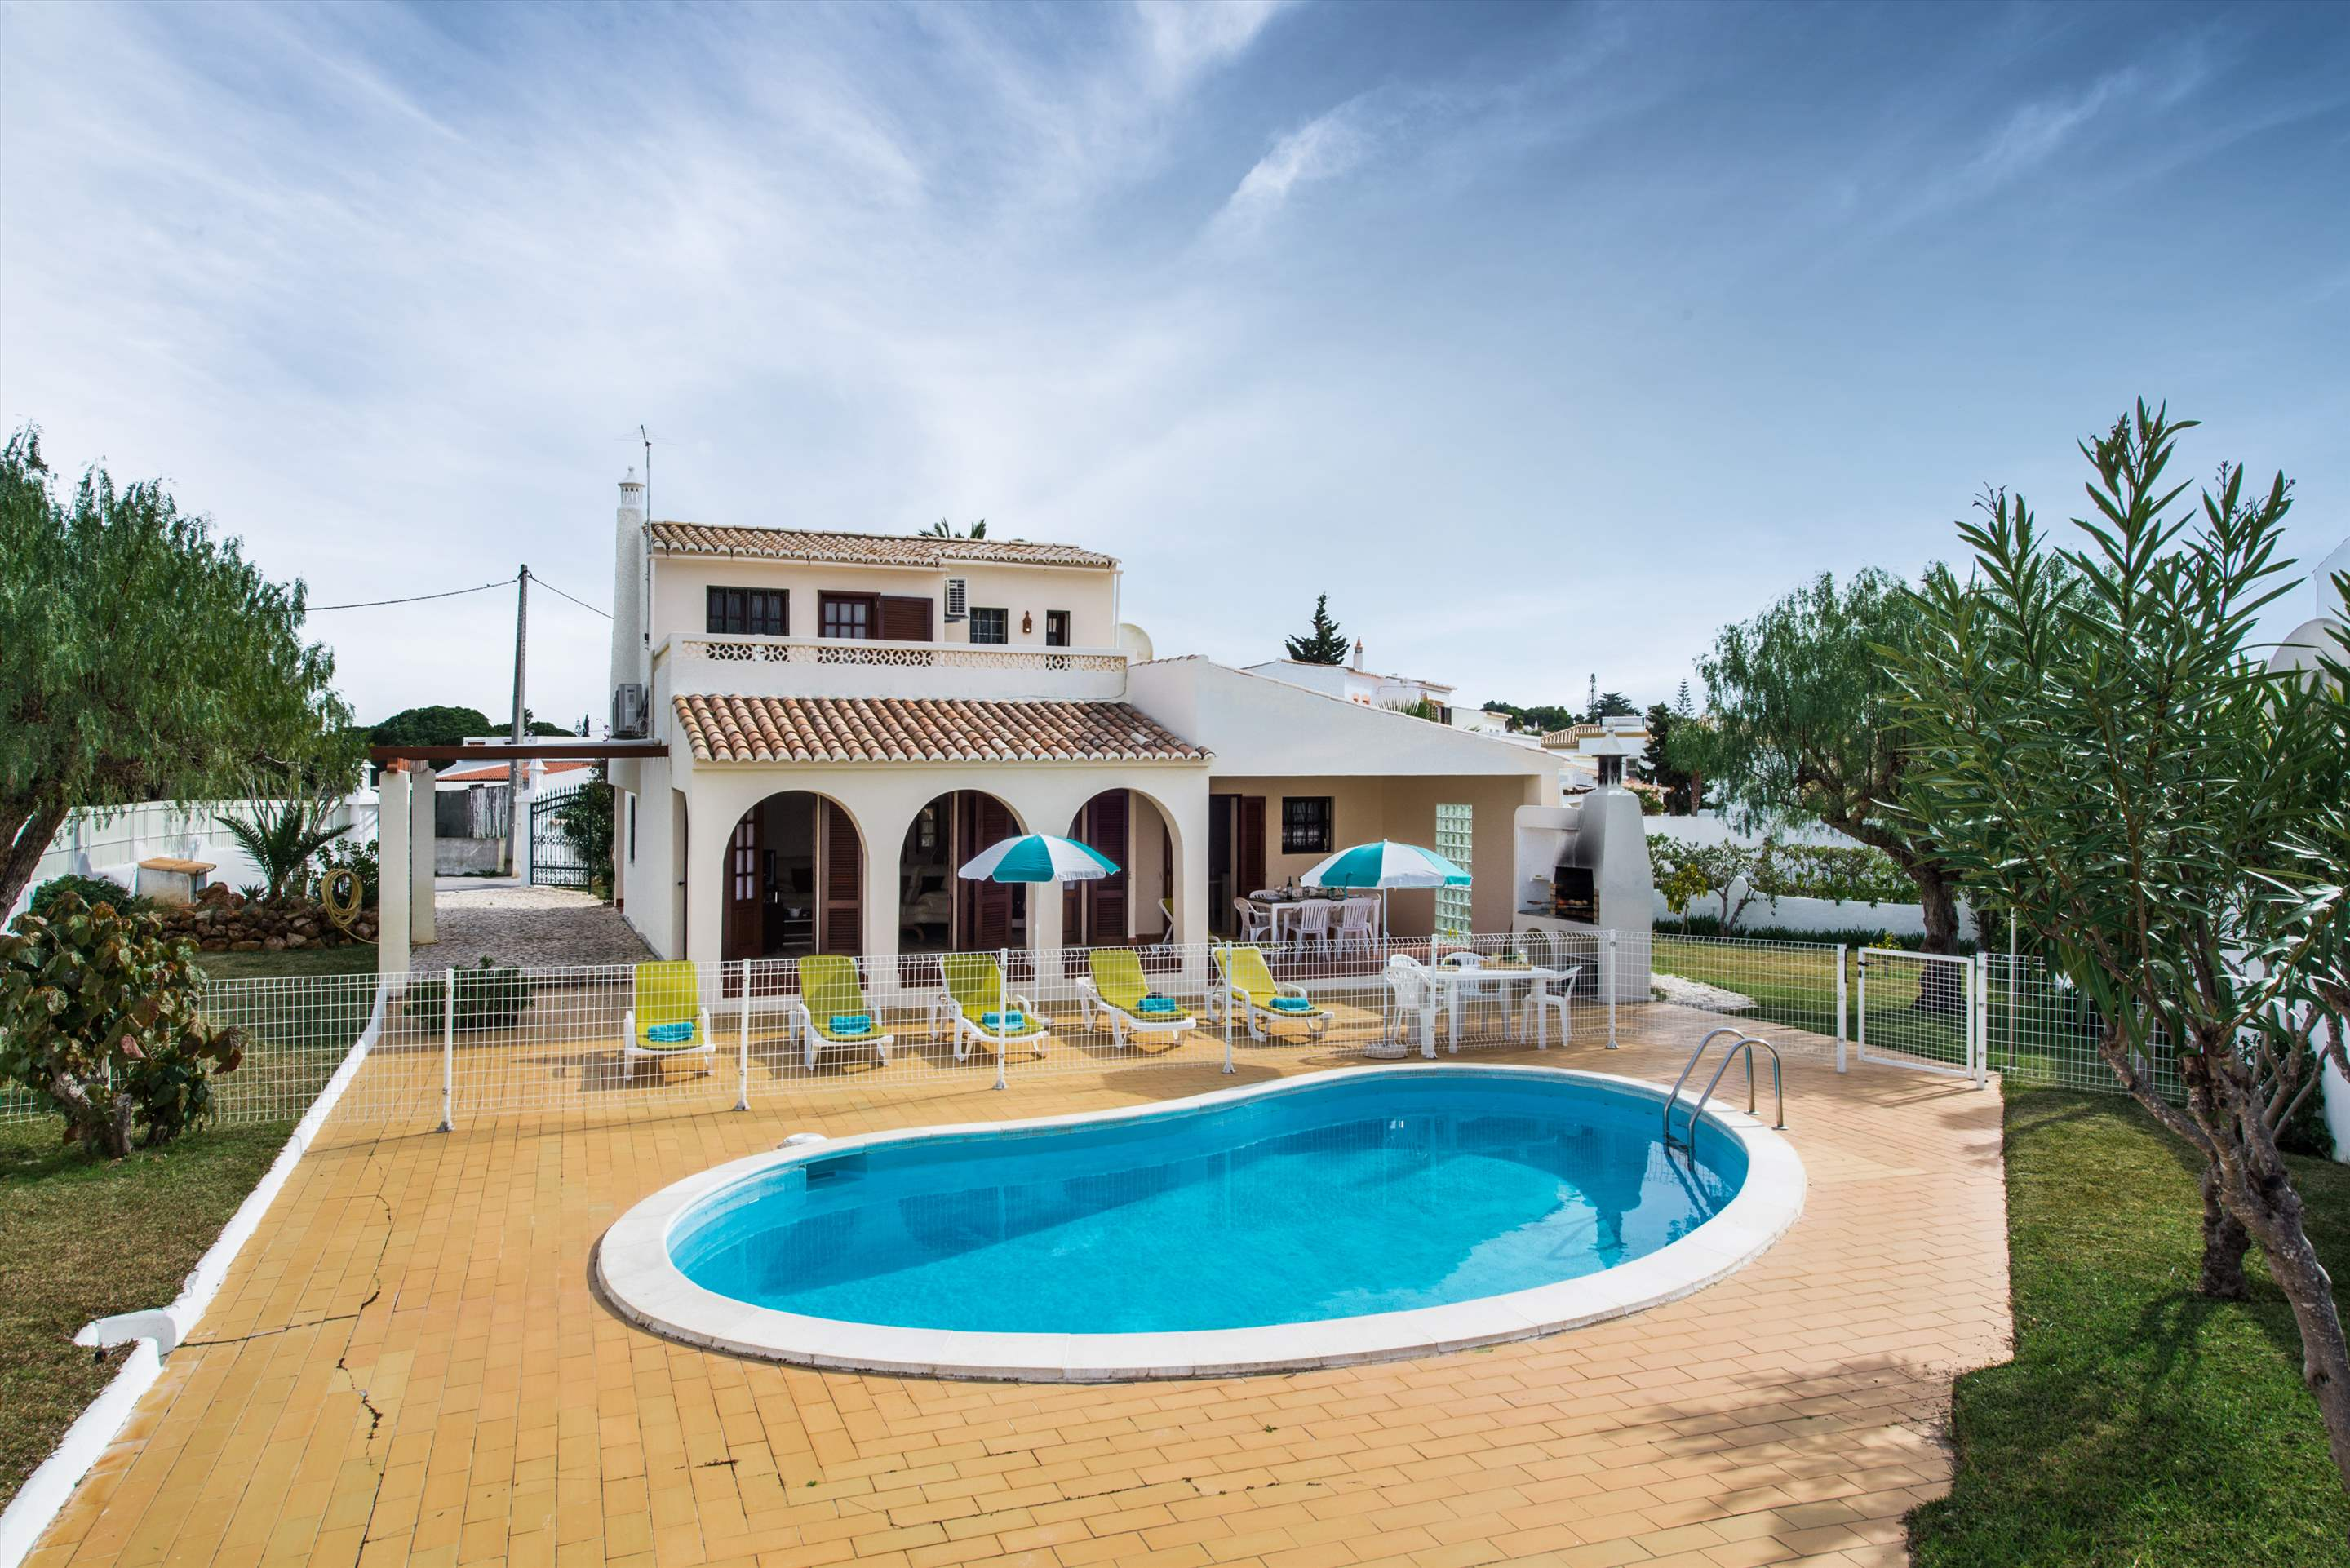 Casa Isabel, 5-6 persons rate, 3 bedroom villa in Gale, Vale da Parra and Guia, Algarve Photo #1